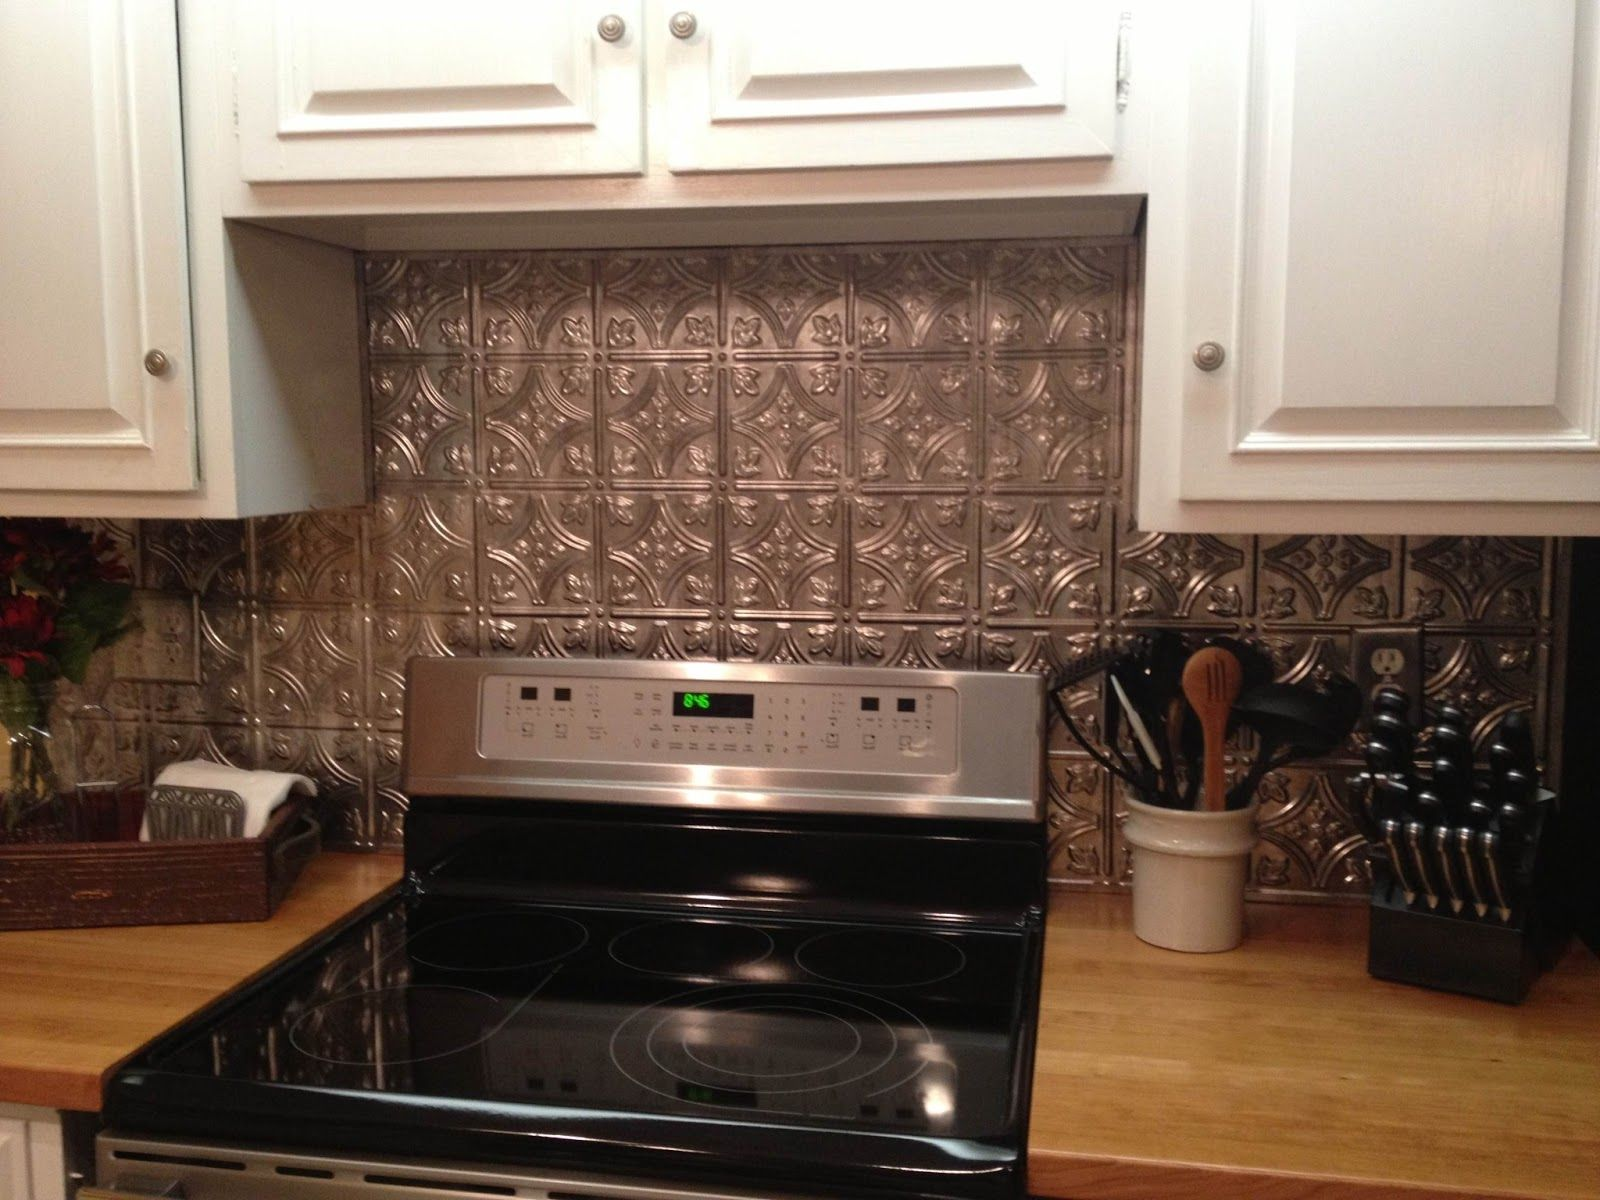 Uncategorized Tin Backsplashes For Kitchens cool diy faux tin kitchen backsplash with vase top 12 ideas